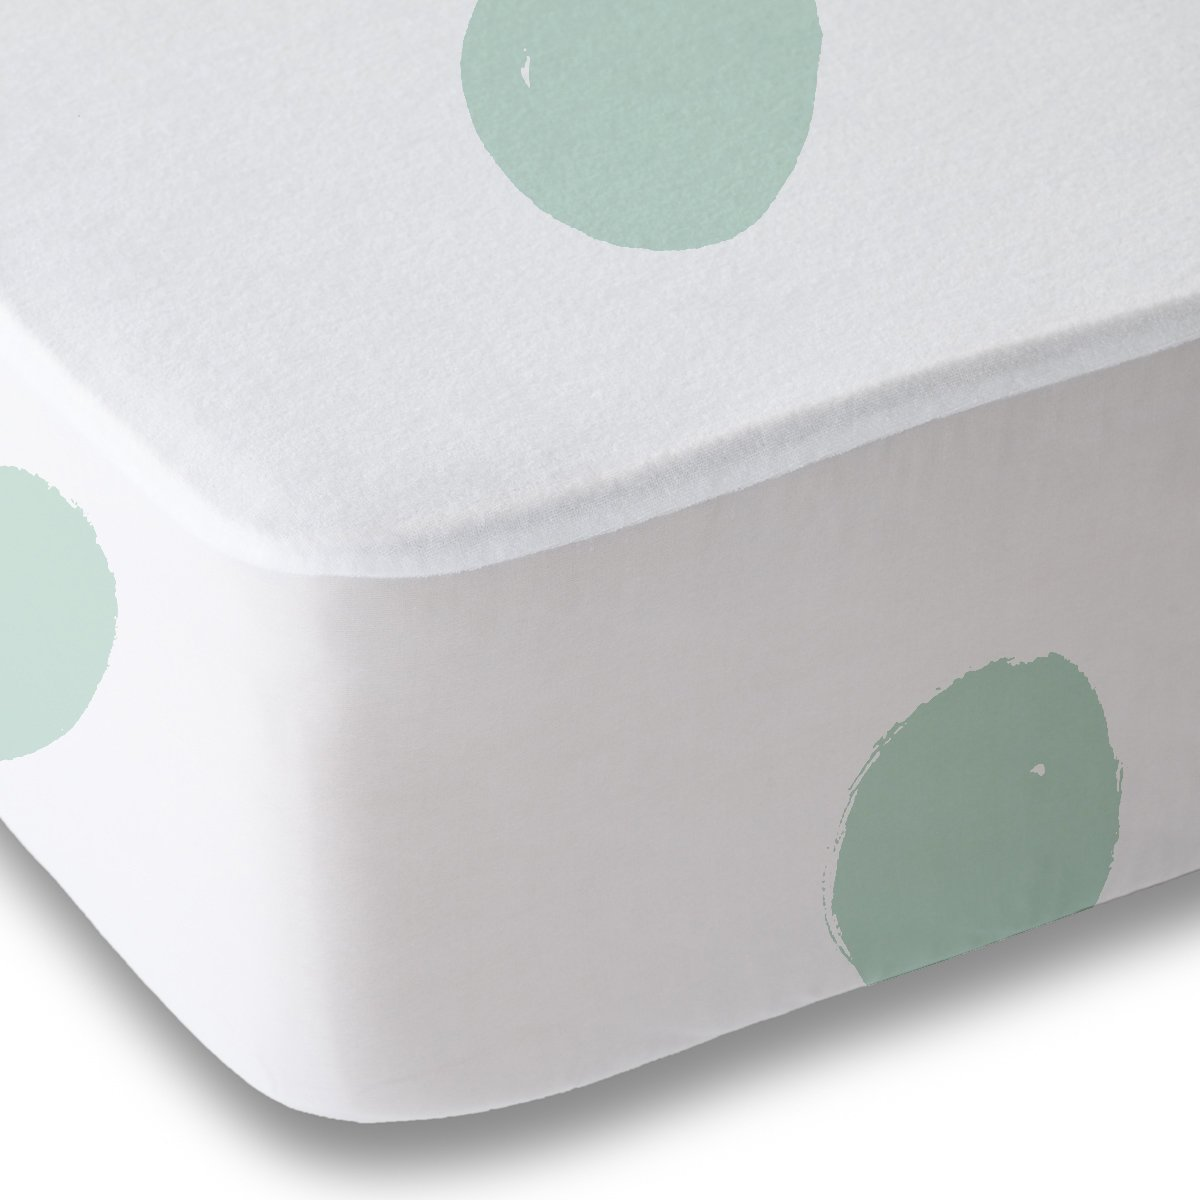 Seafoam Green Polka Dot Fitted Crib Sheet Baby Bedding, White and Mint Amadora Designed Concepts SHBSFDOT